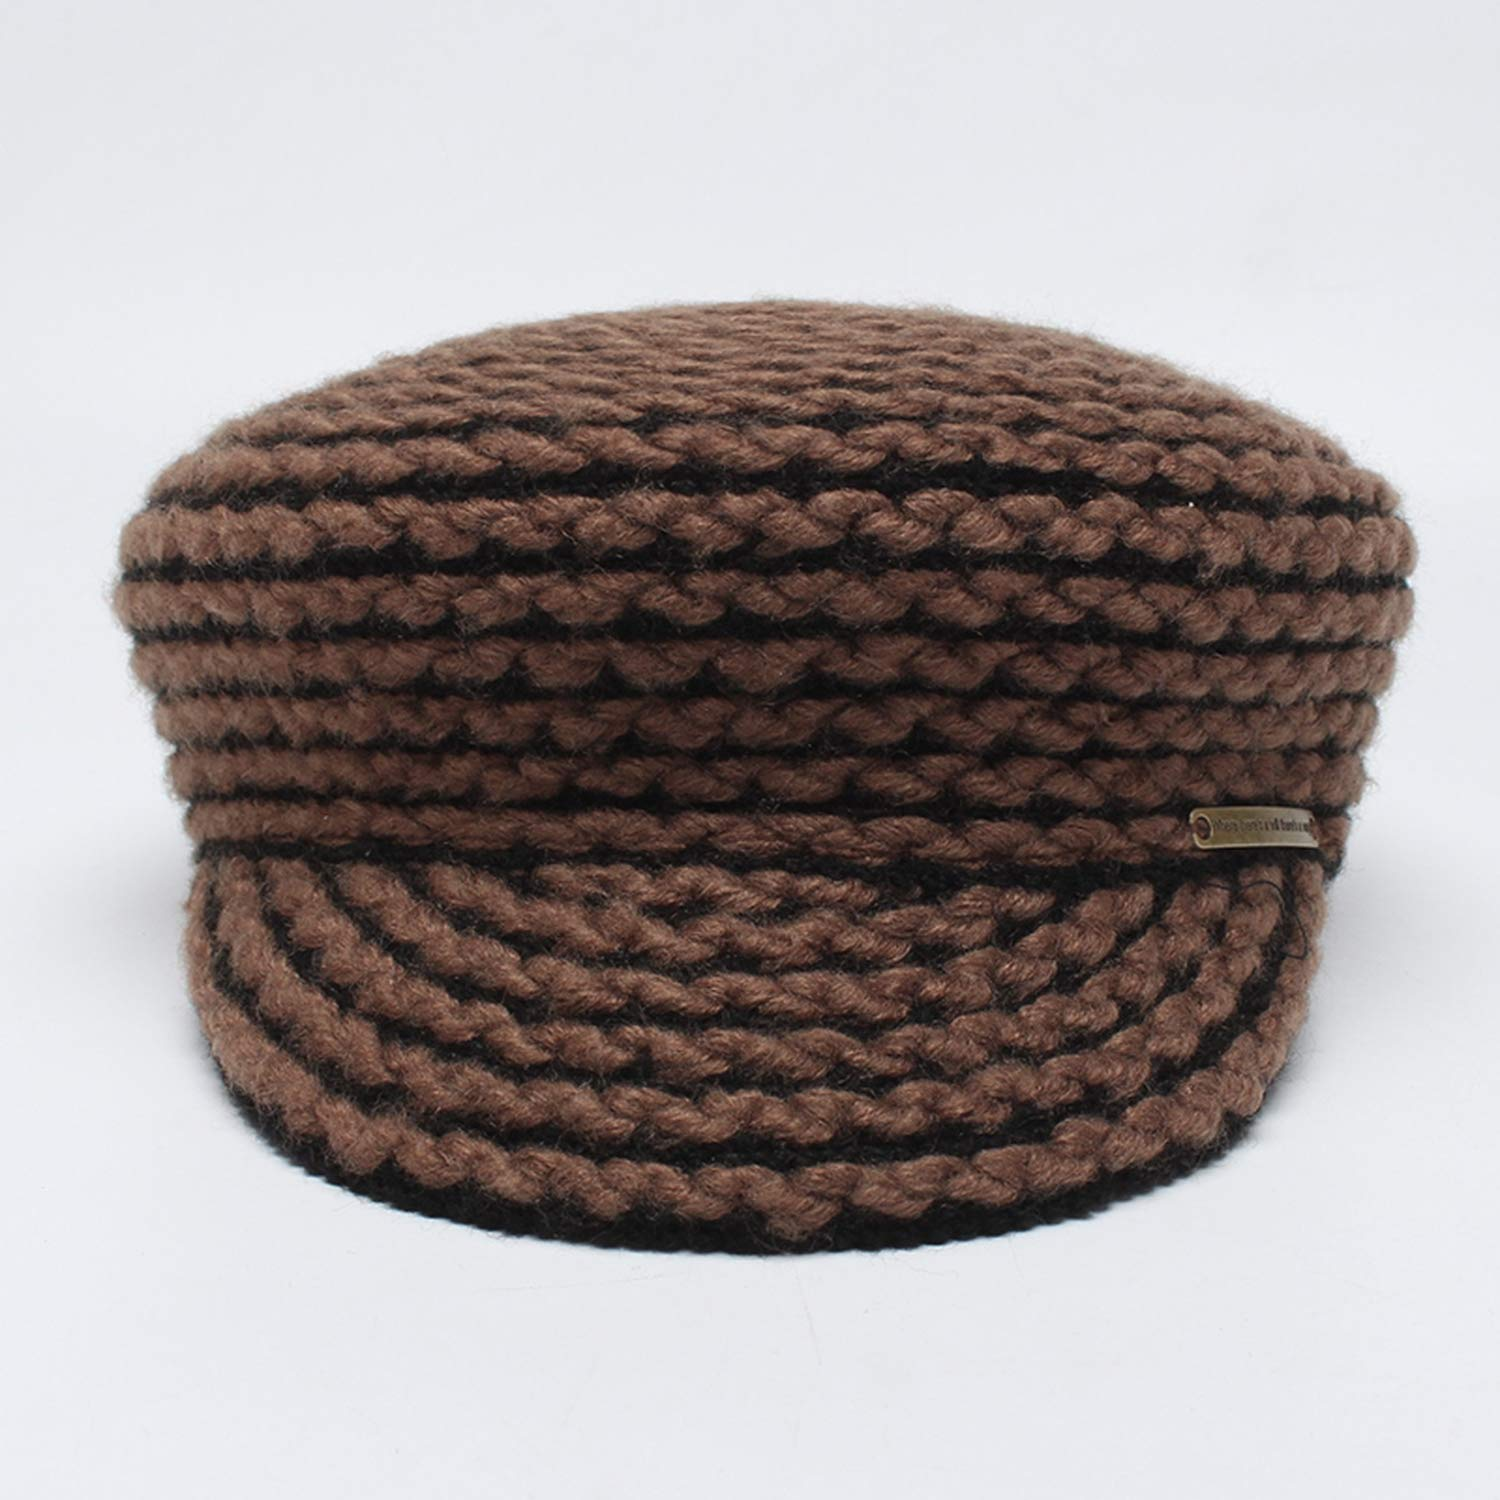 ANDERDM Military Hat for Women 2017 Autumn Winter Woolen Military Caps Ladies Casual Hats Female Casquette